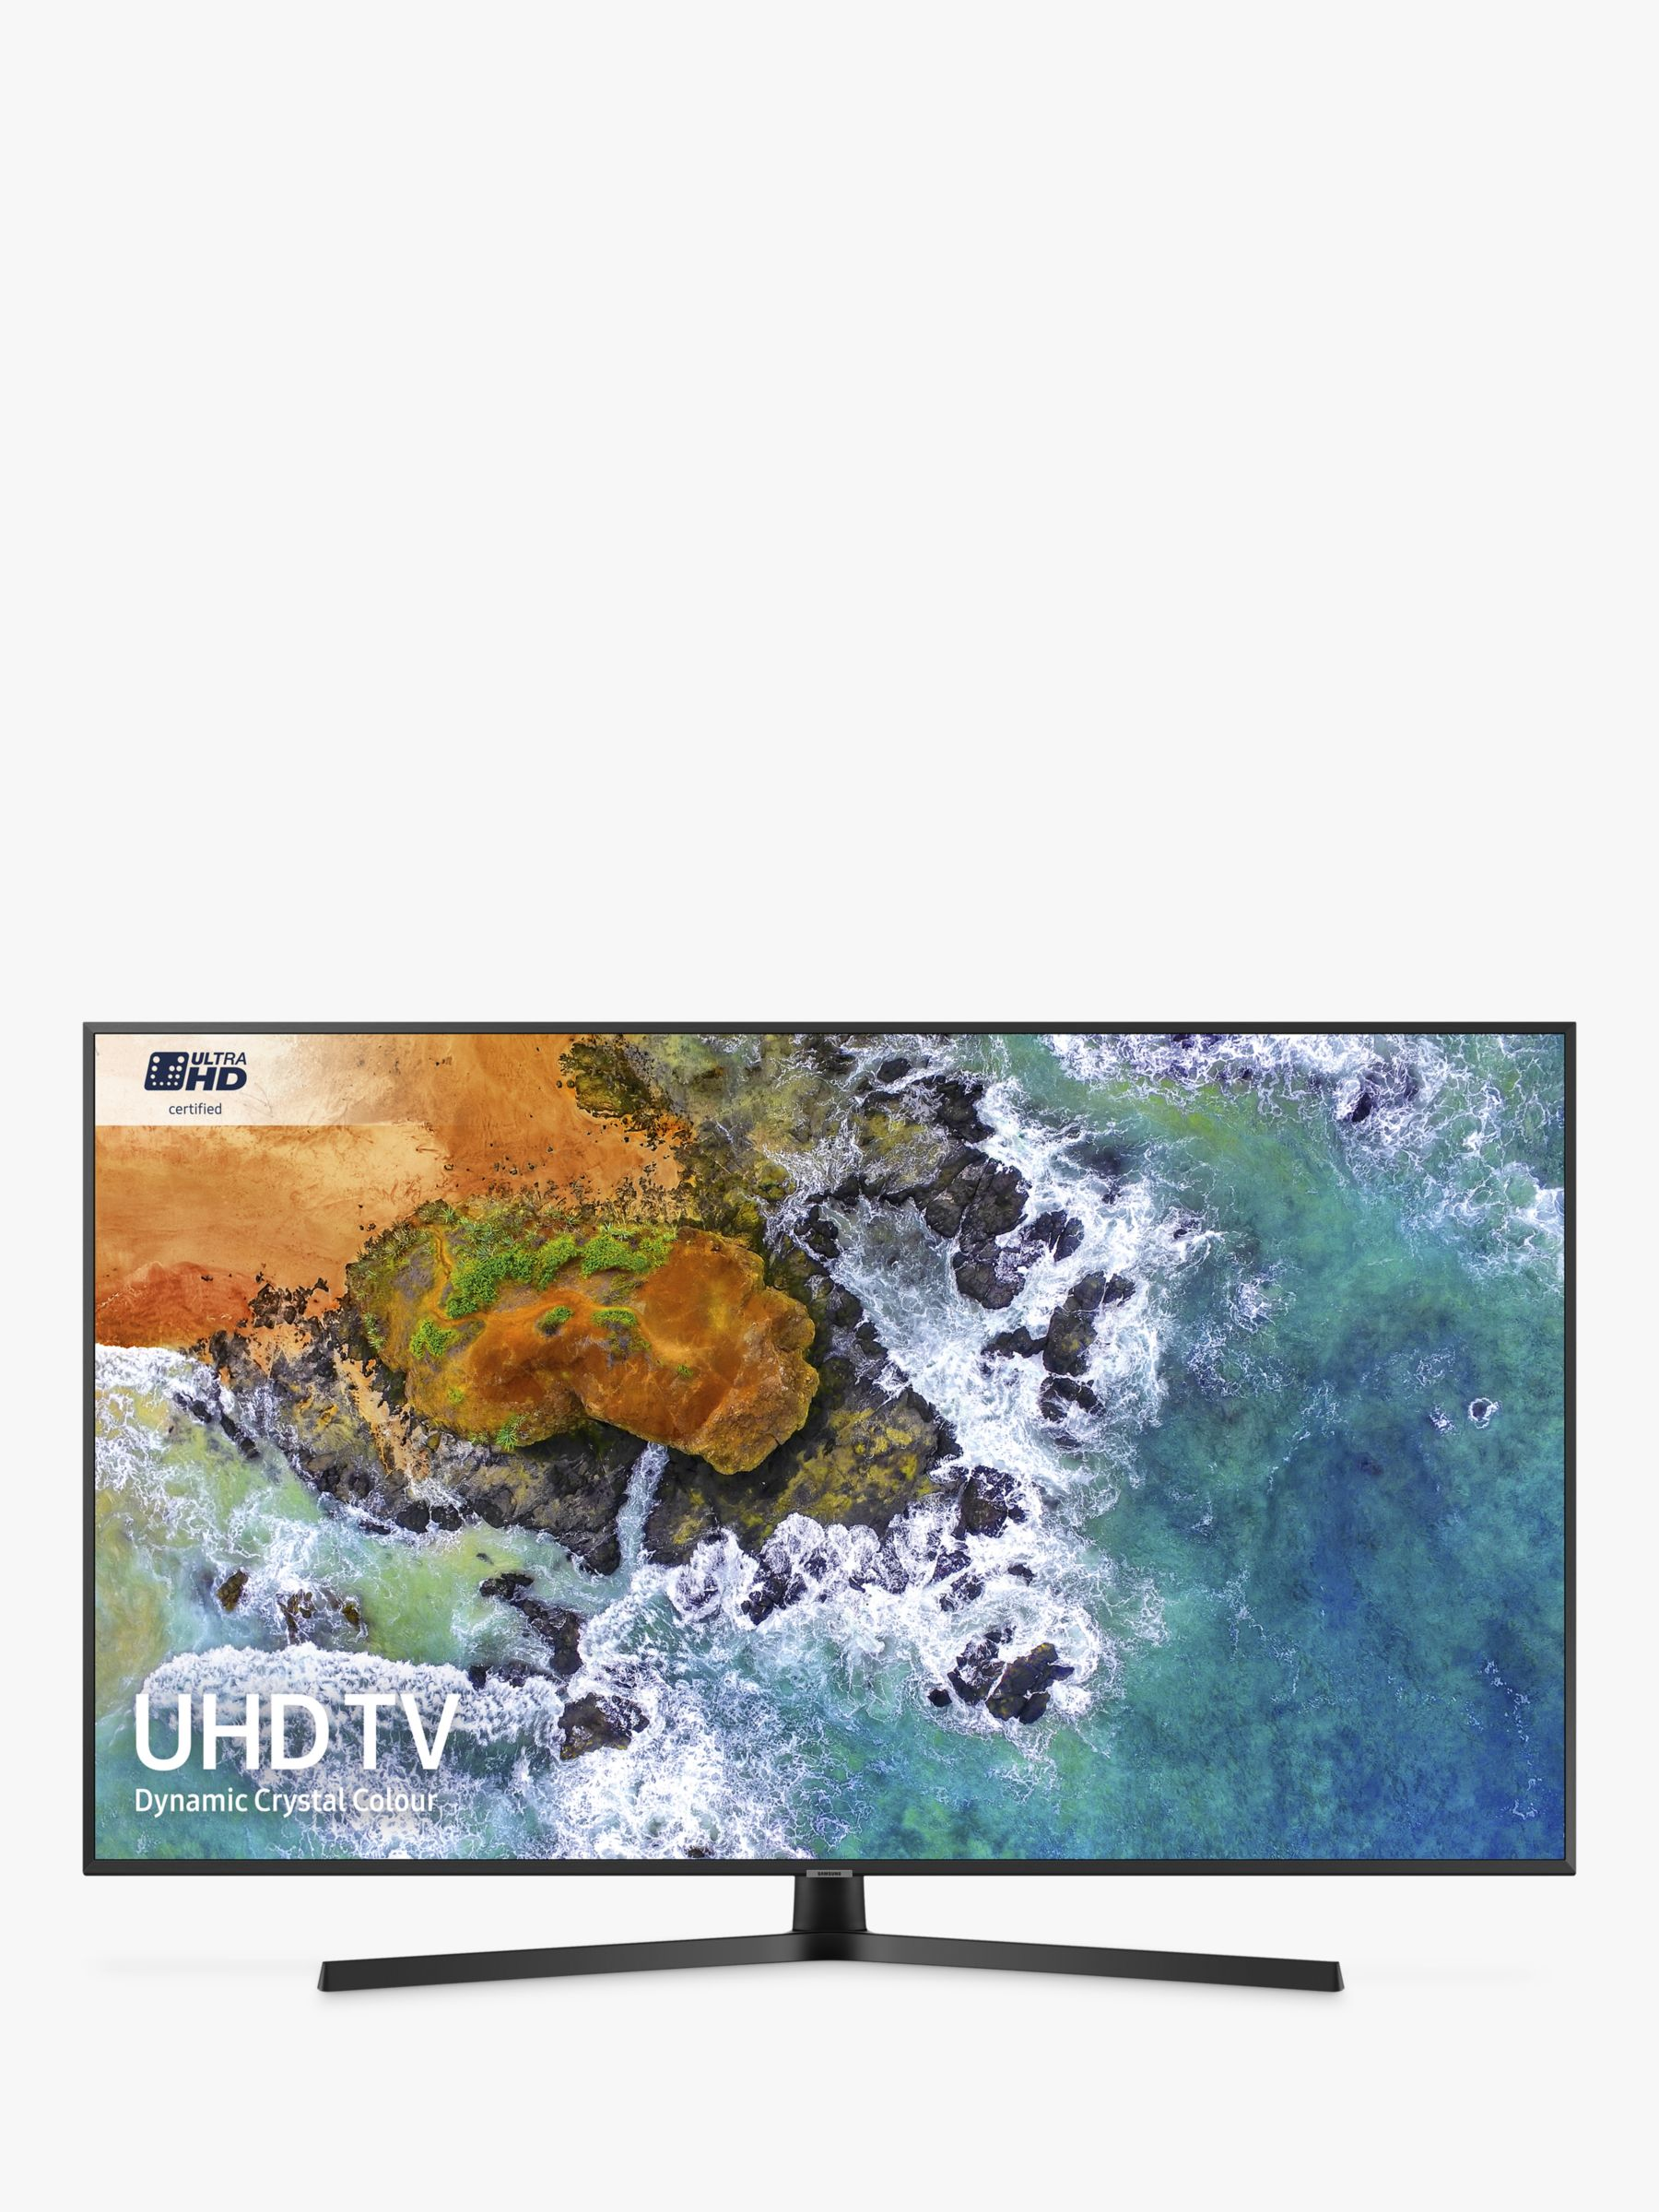 84f3b5770fcd8 Samsung UE50NU7400 HDR 4K Ultra HD Smart TV